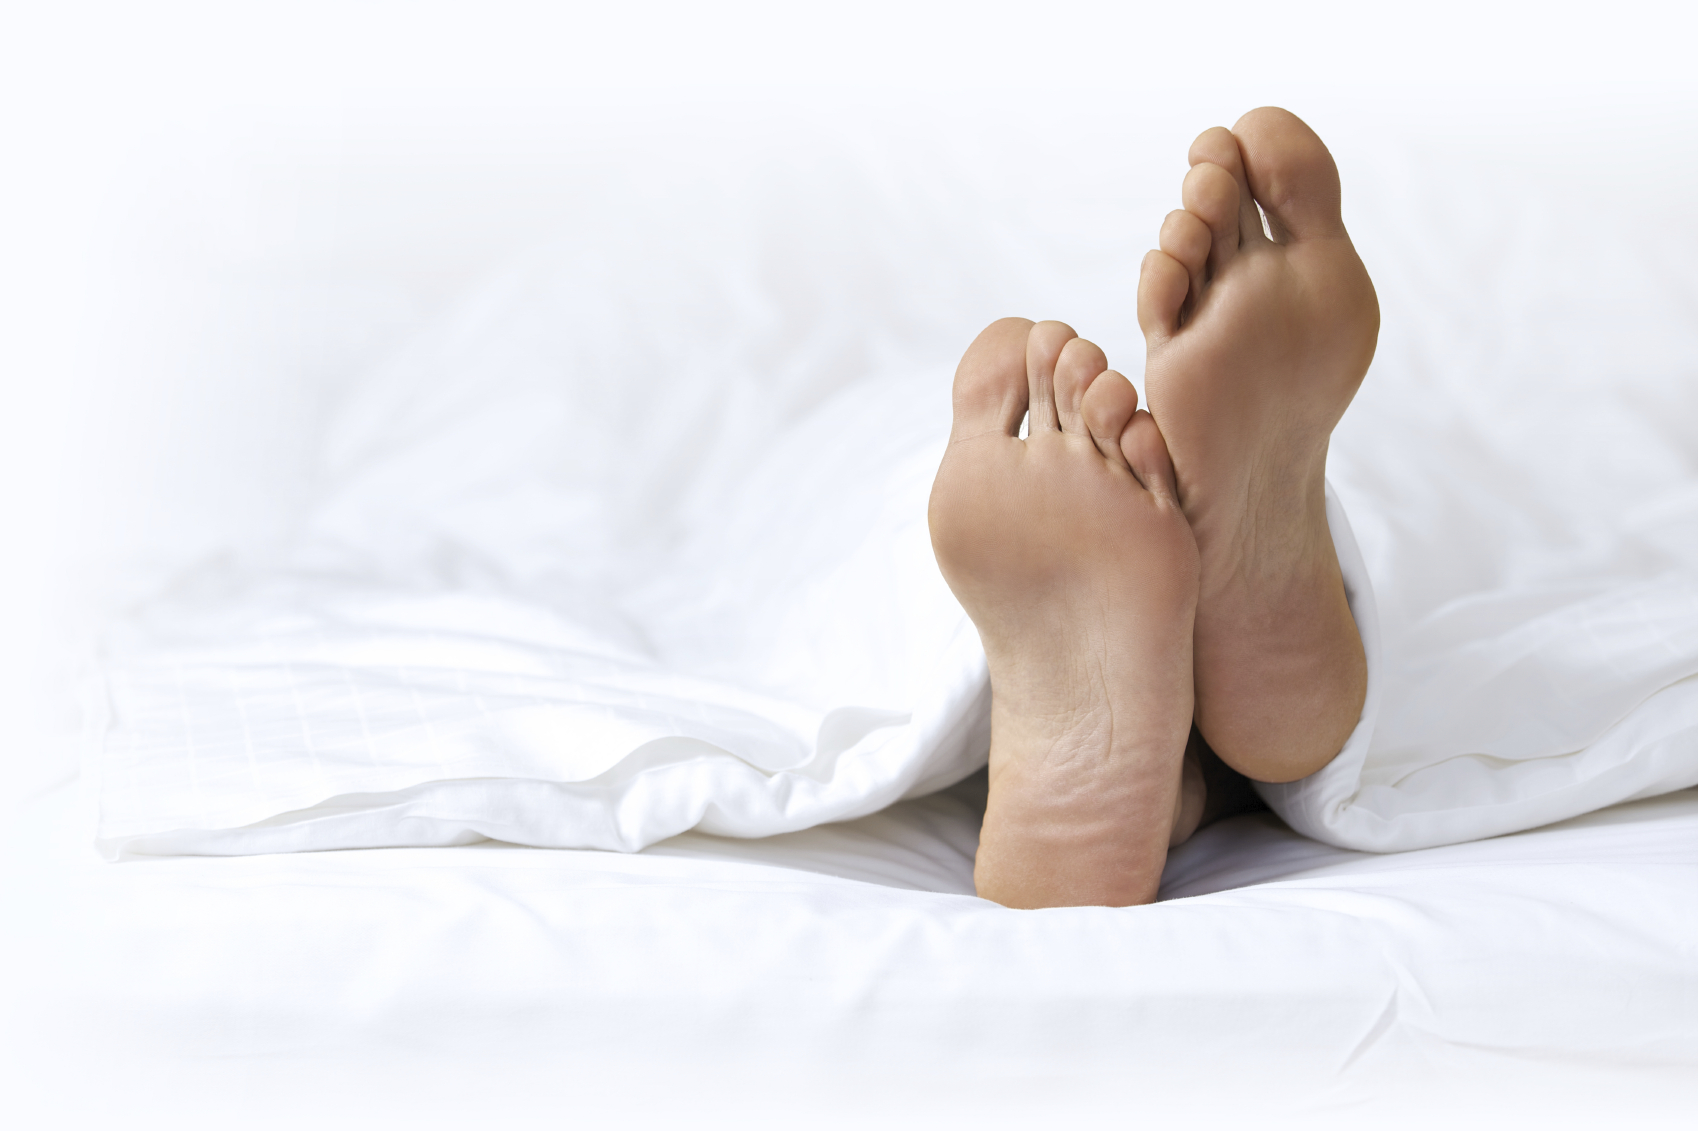 Sleeping in the nude is better for your health, say doctors.